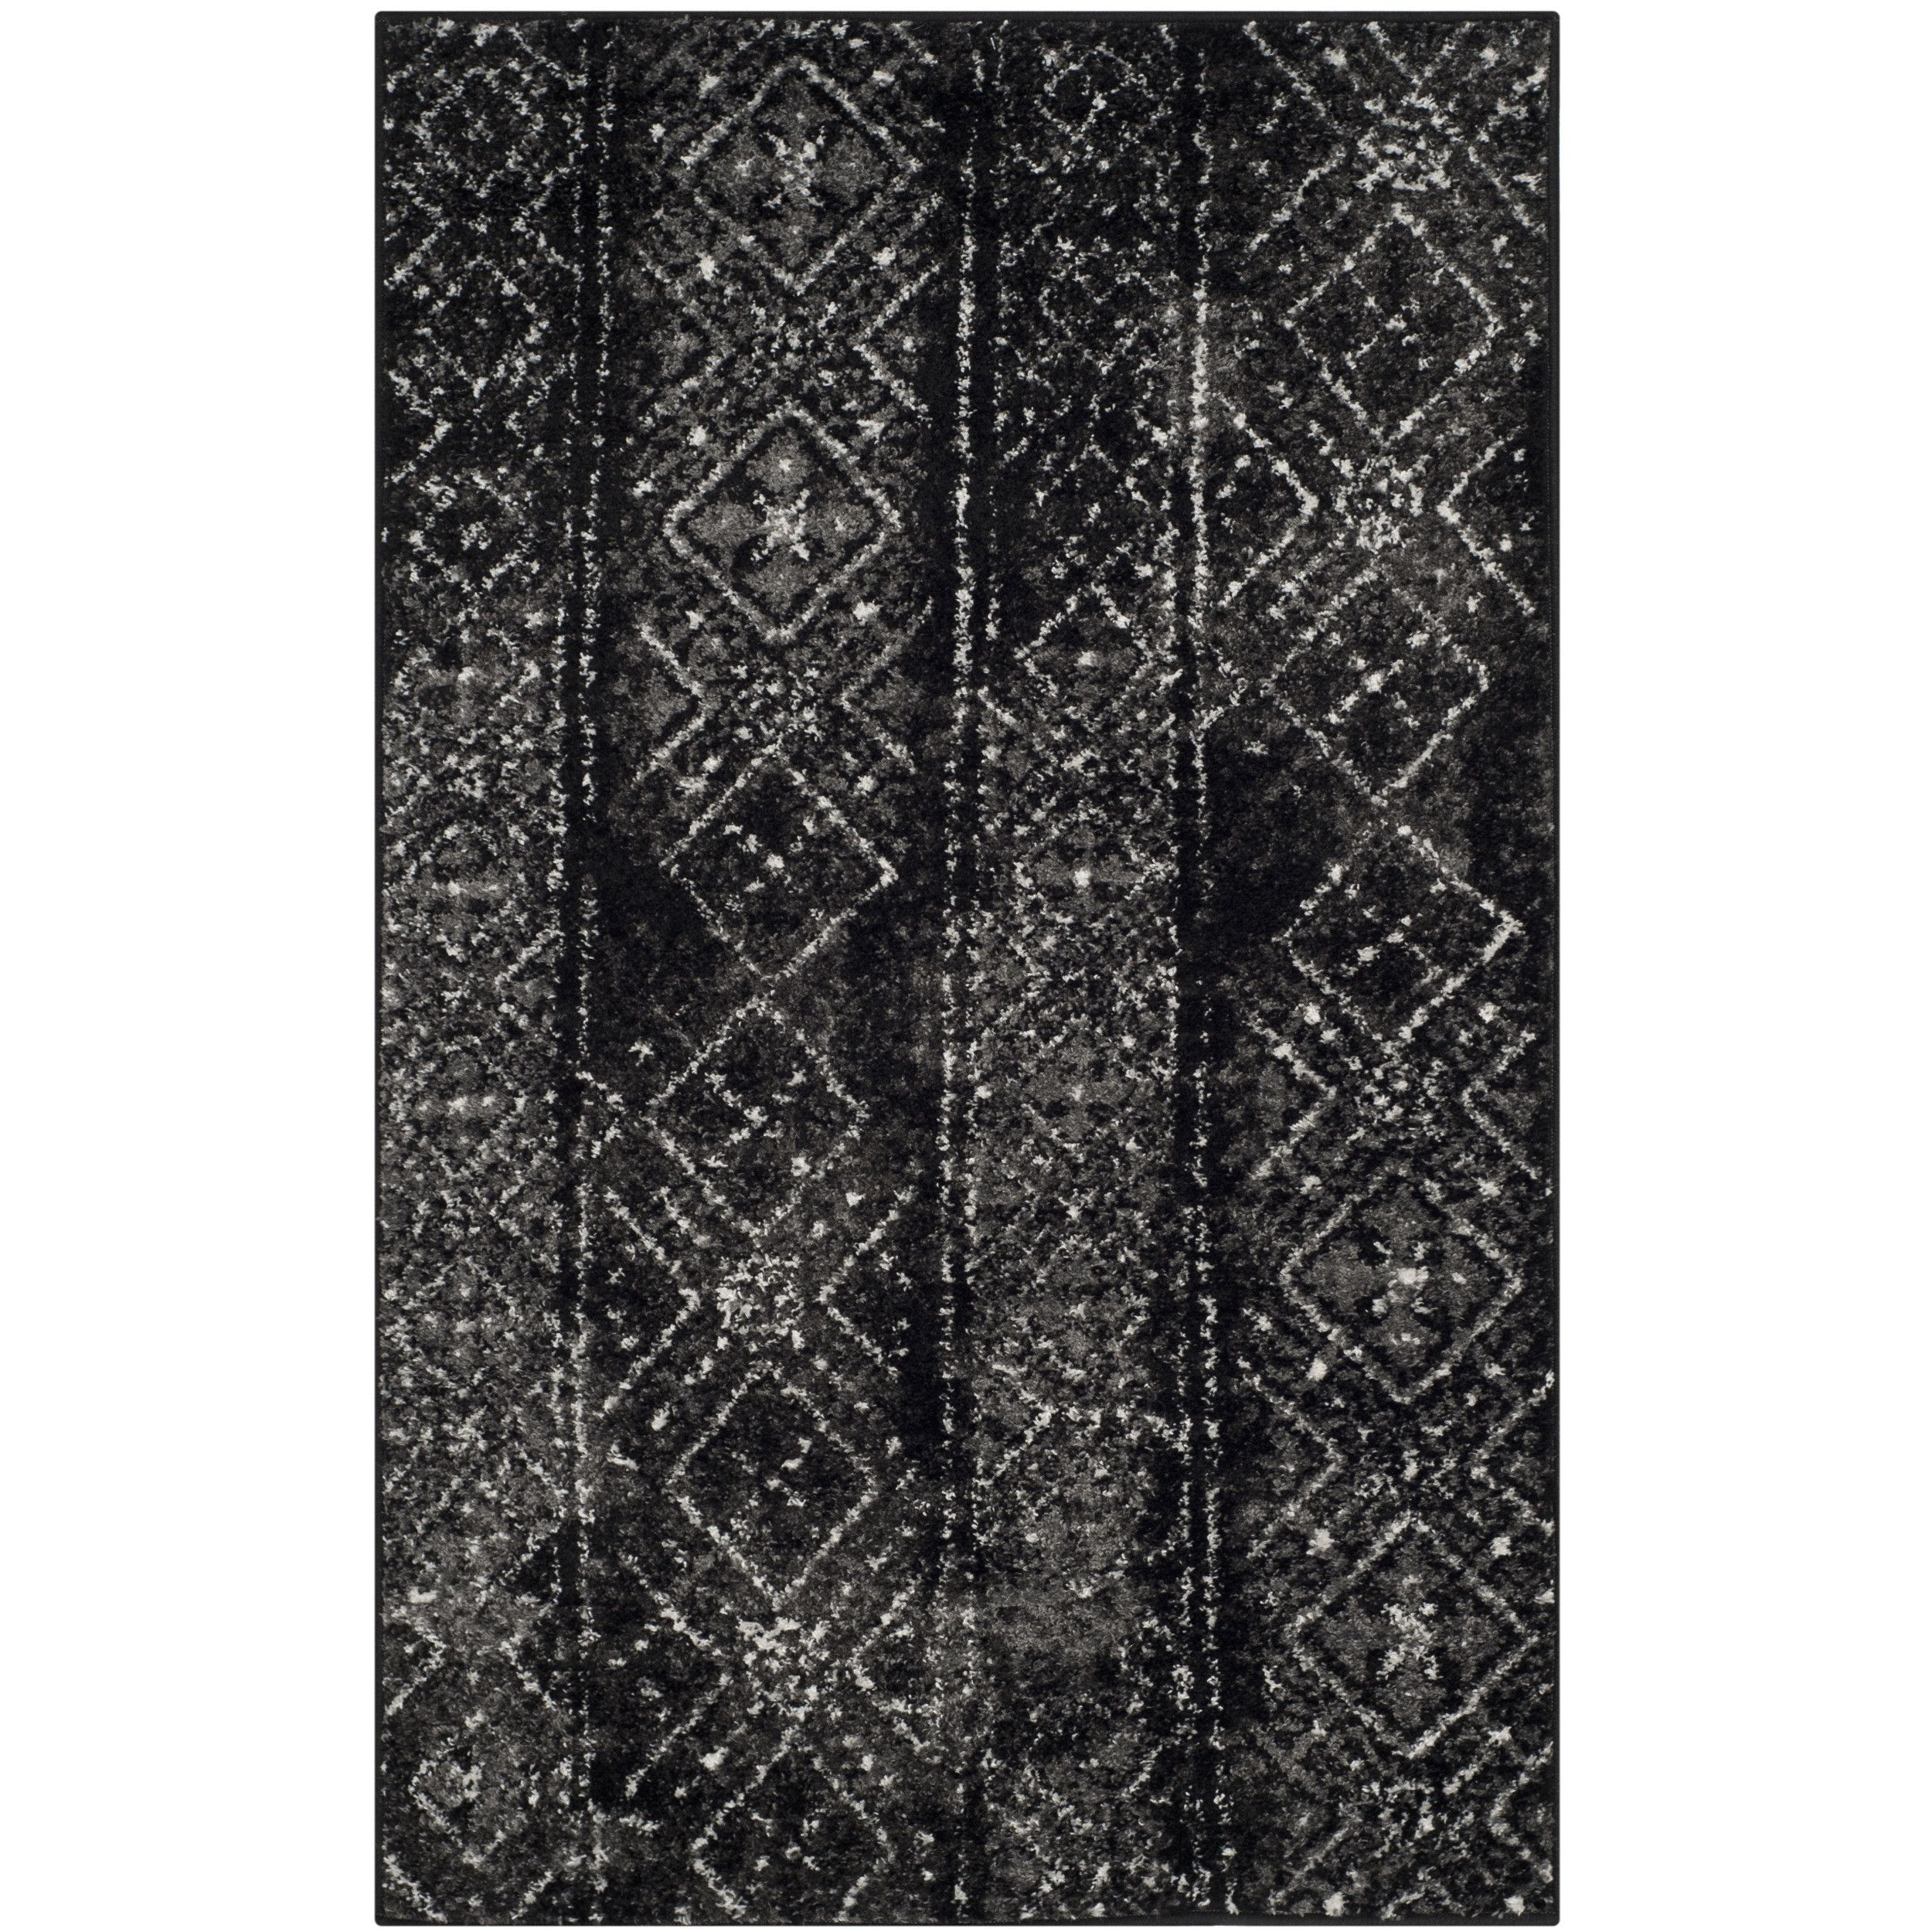 Safavieh Adirondack Black Silver Area Rug Therapy Office